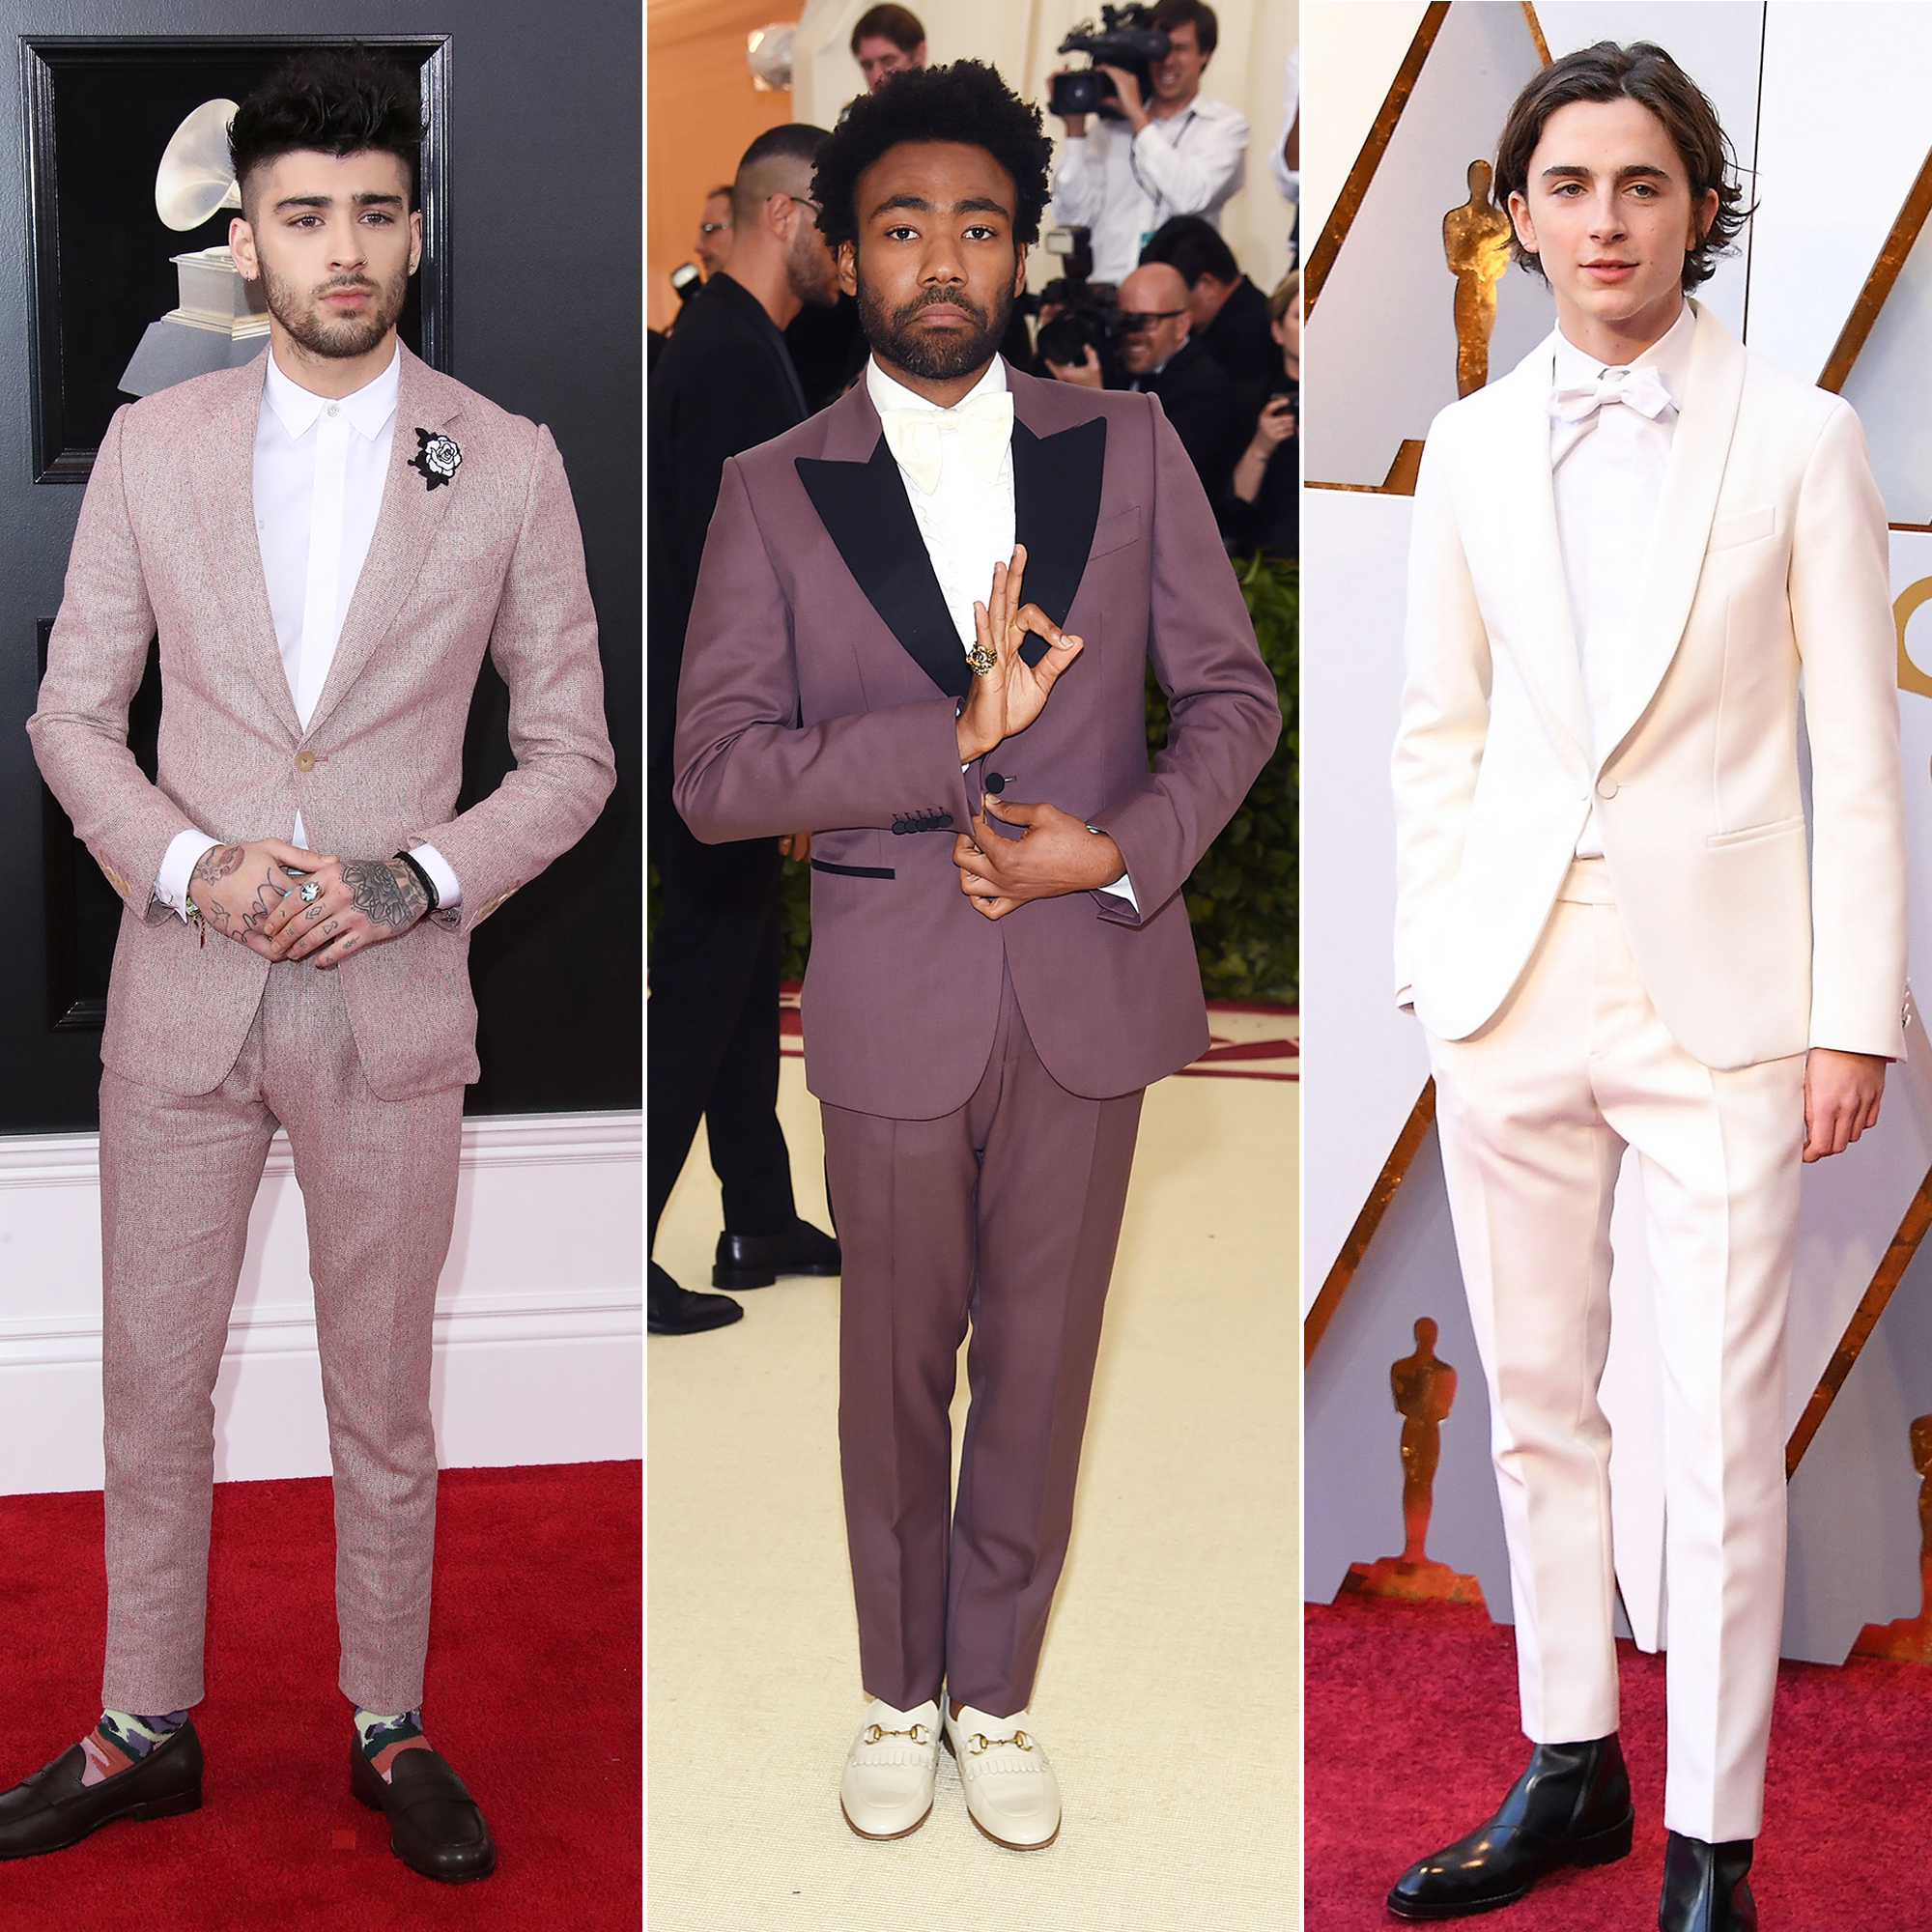 Hottest Guys in Suits - 2018 Edition - Zayn Malik, Donald Glover and Timothee Chalamet.